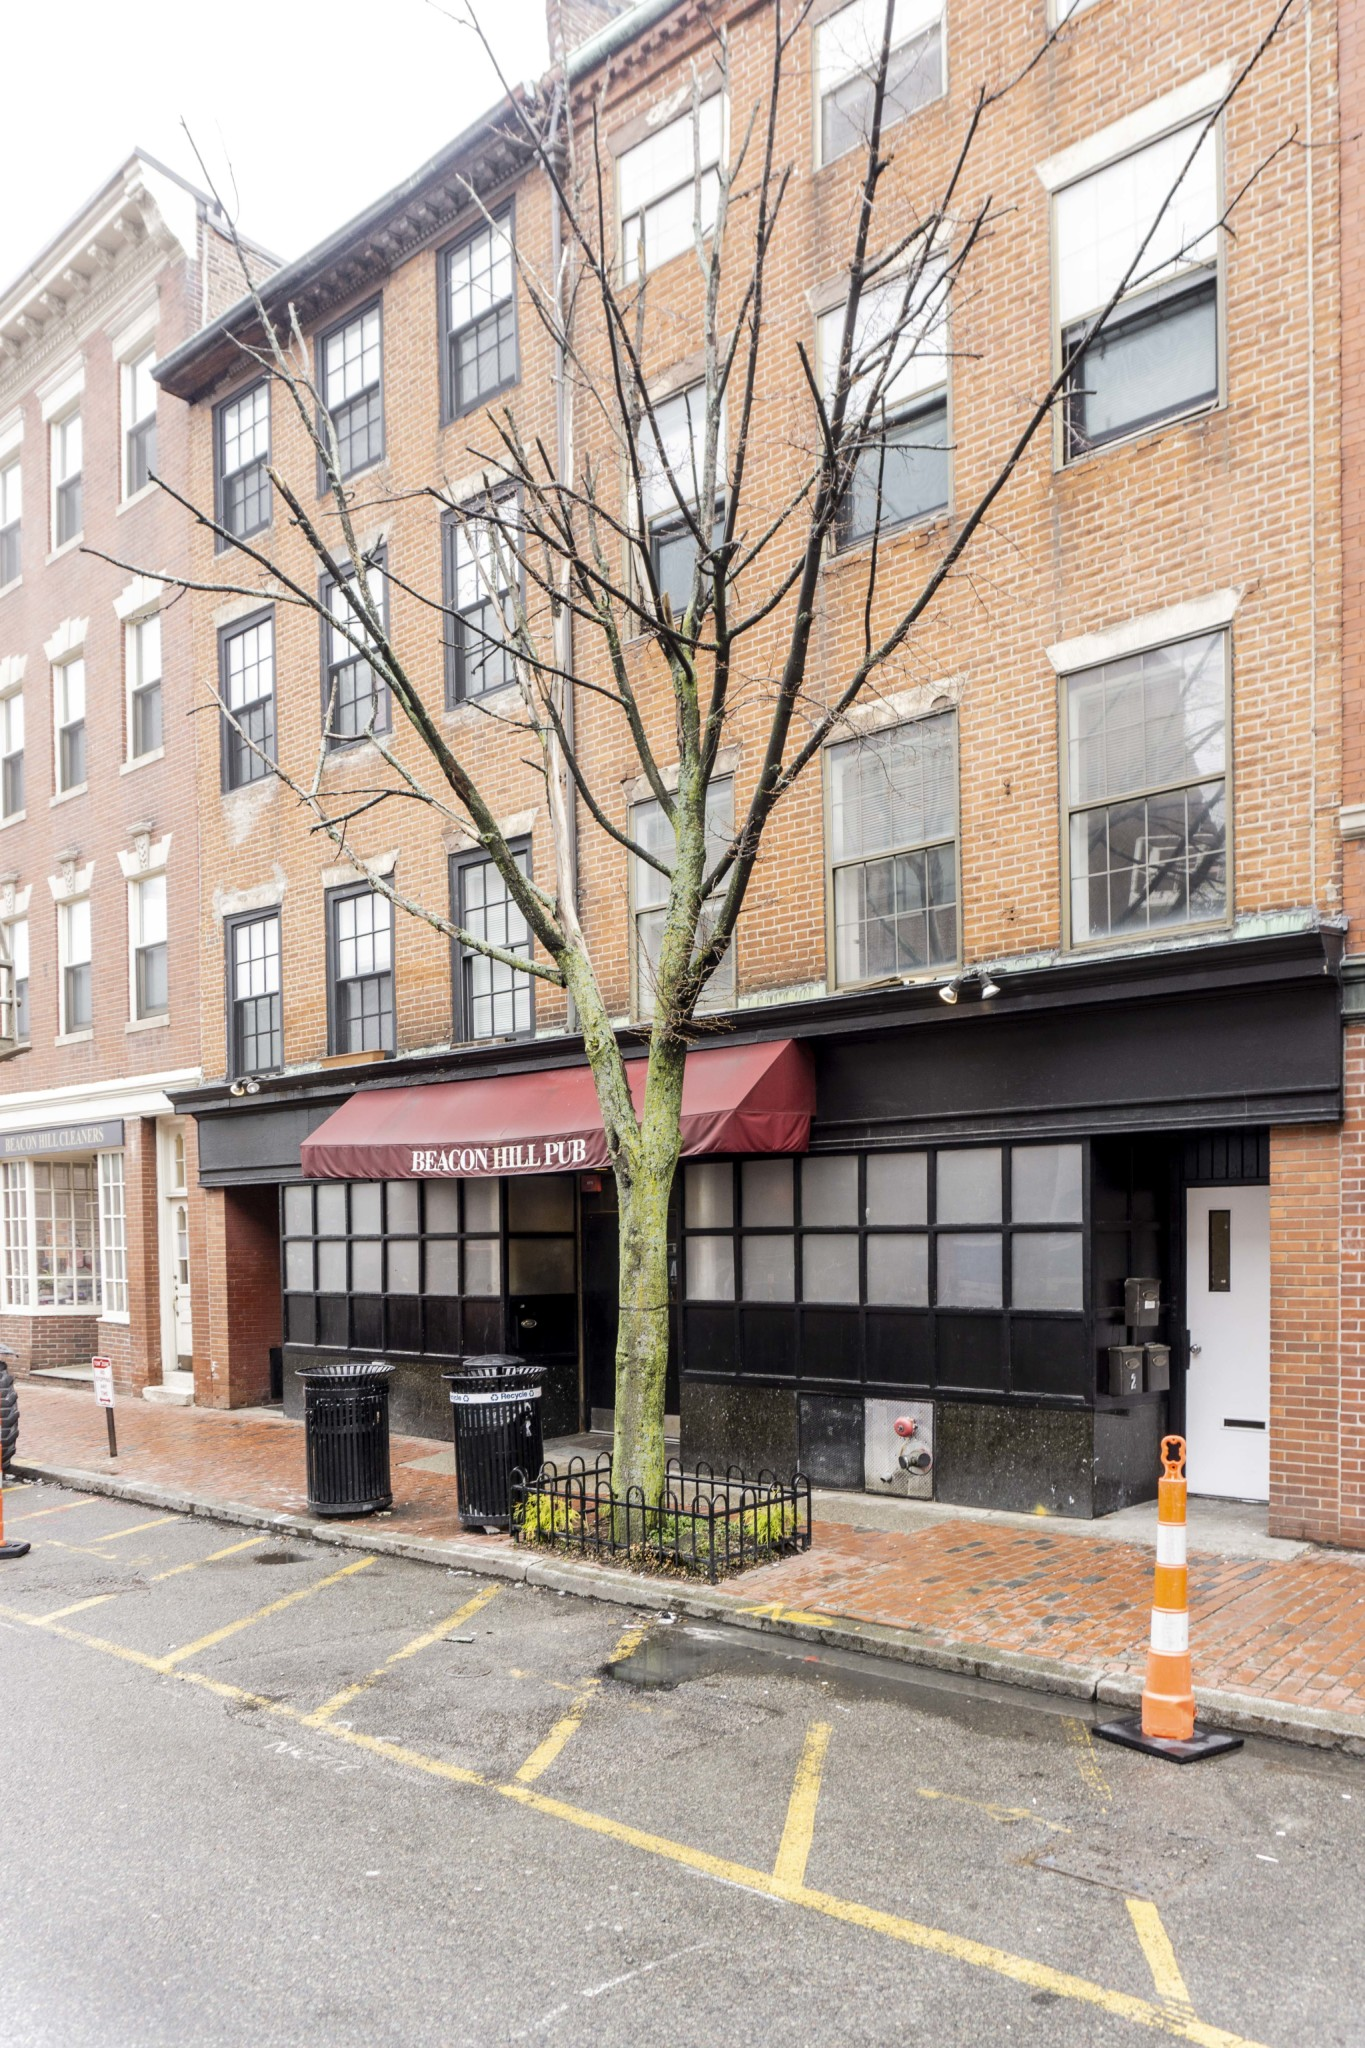 1 Bed, 1 Bath apartment in Boston, Beacon Hill for $2,145